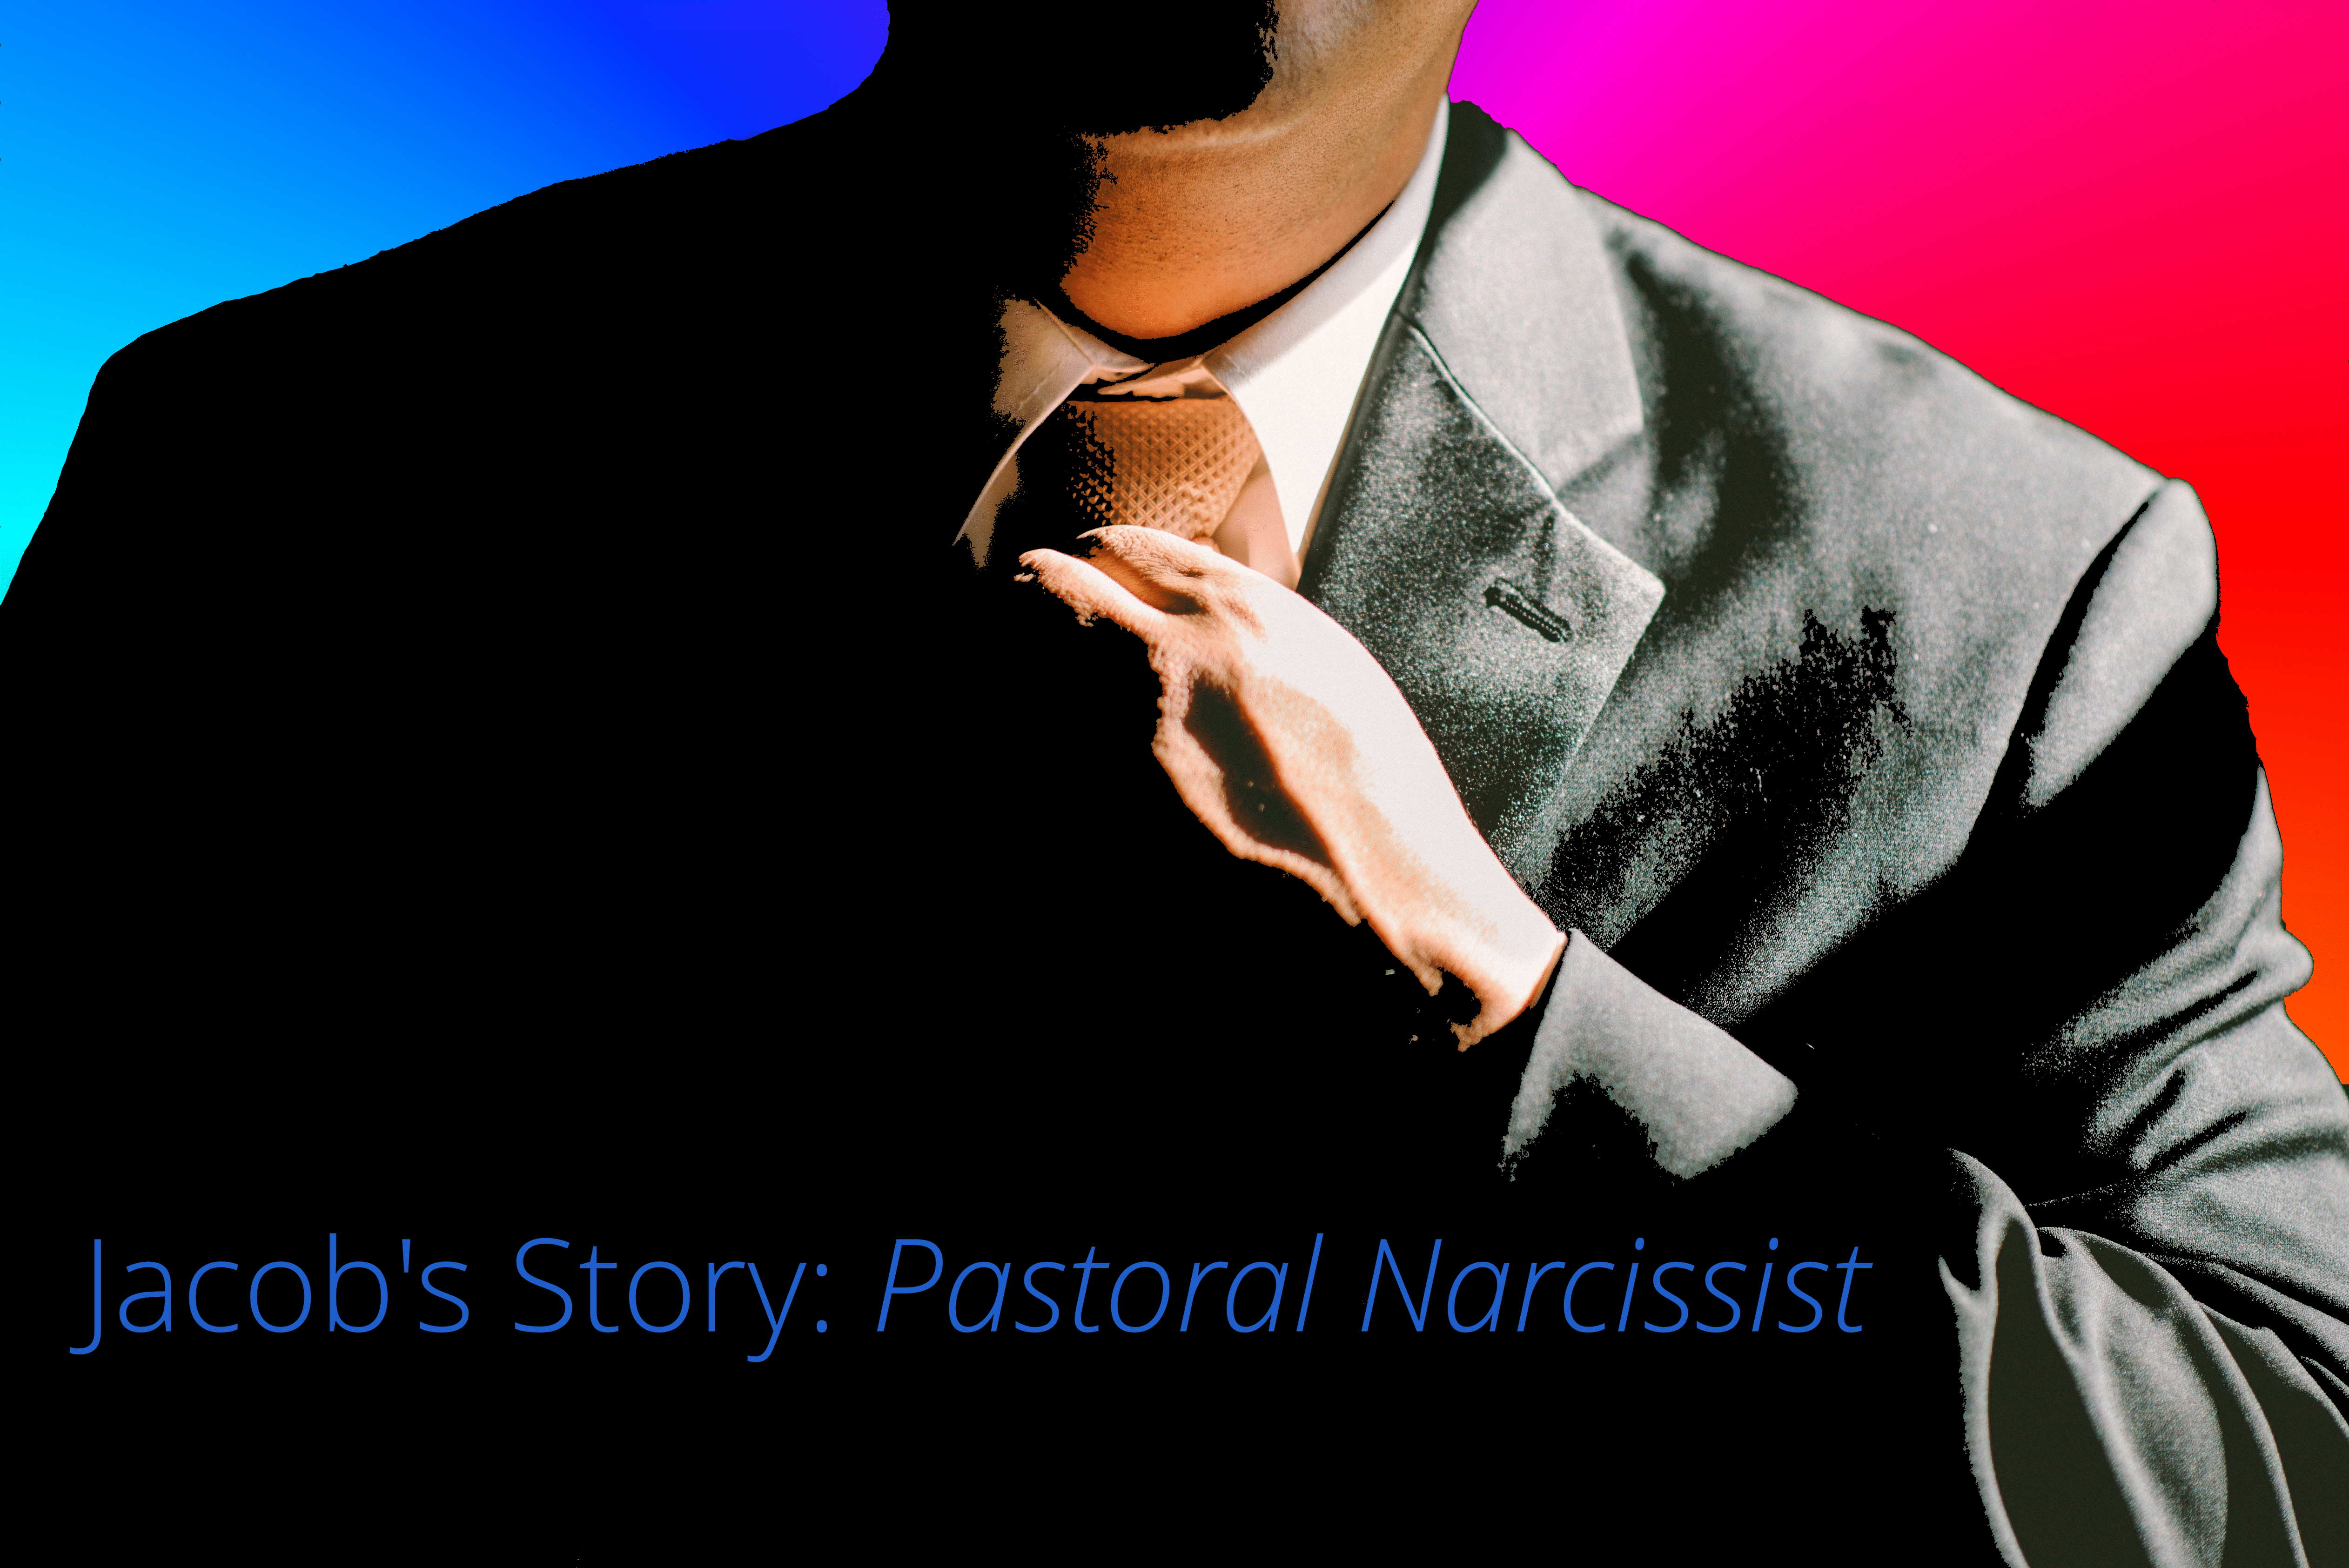 The Narcissist Pastor: Jacob's True and Painful Tale